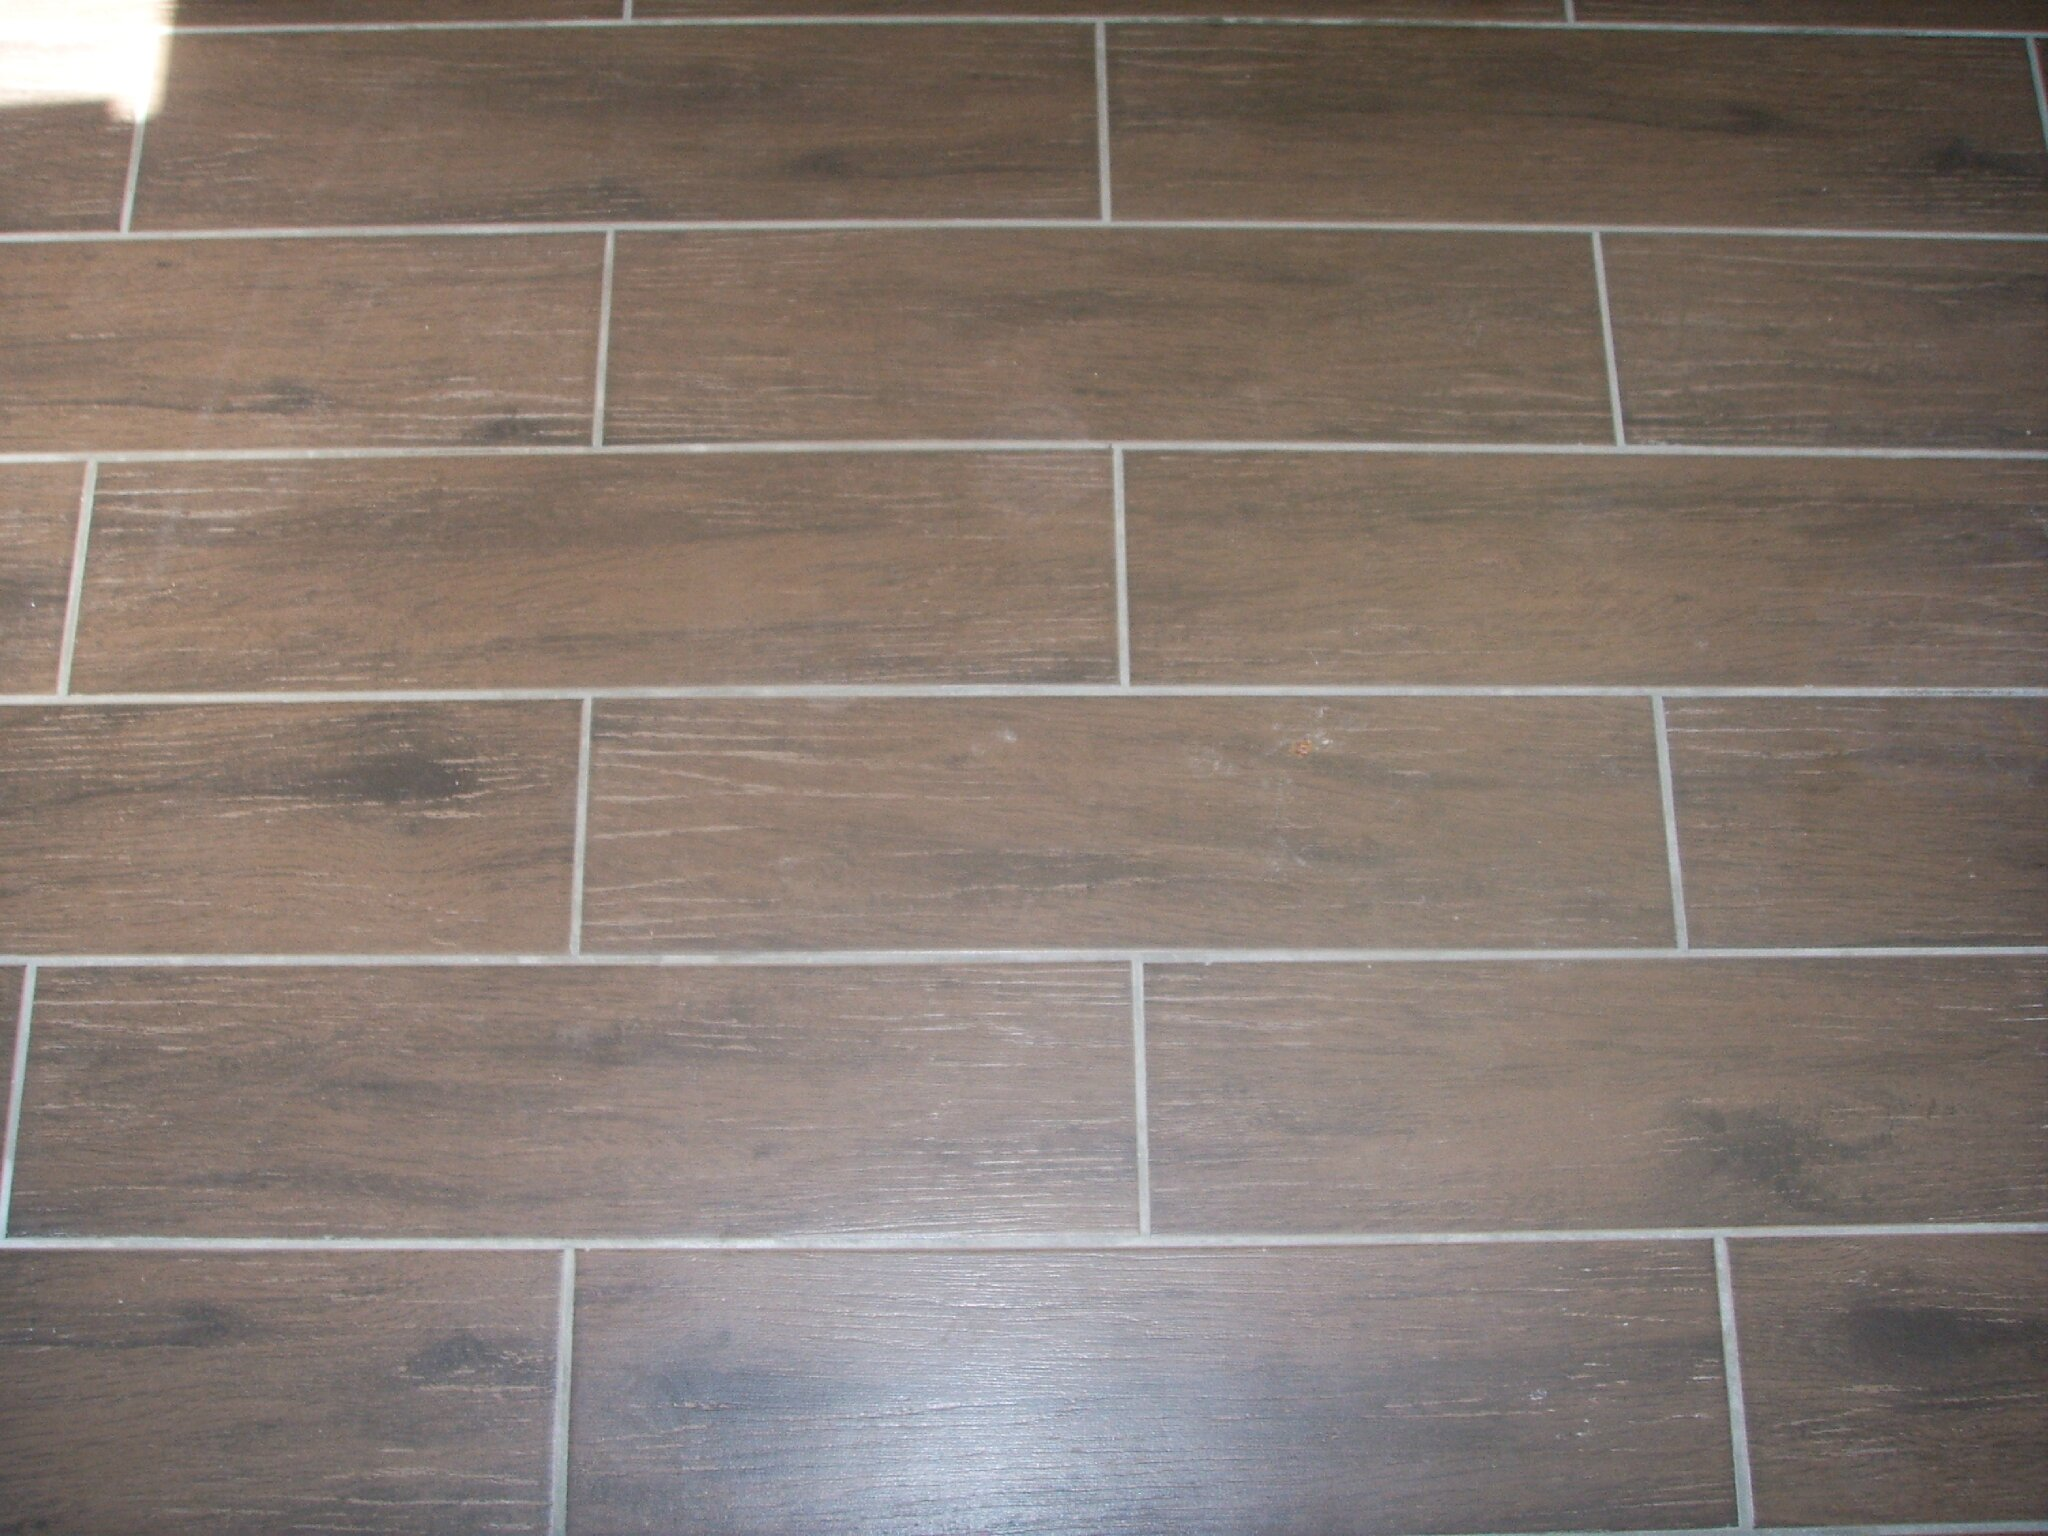 R novation le carrelage fine faible paisseur le for Carrelage style parquet